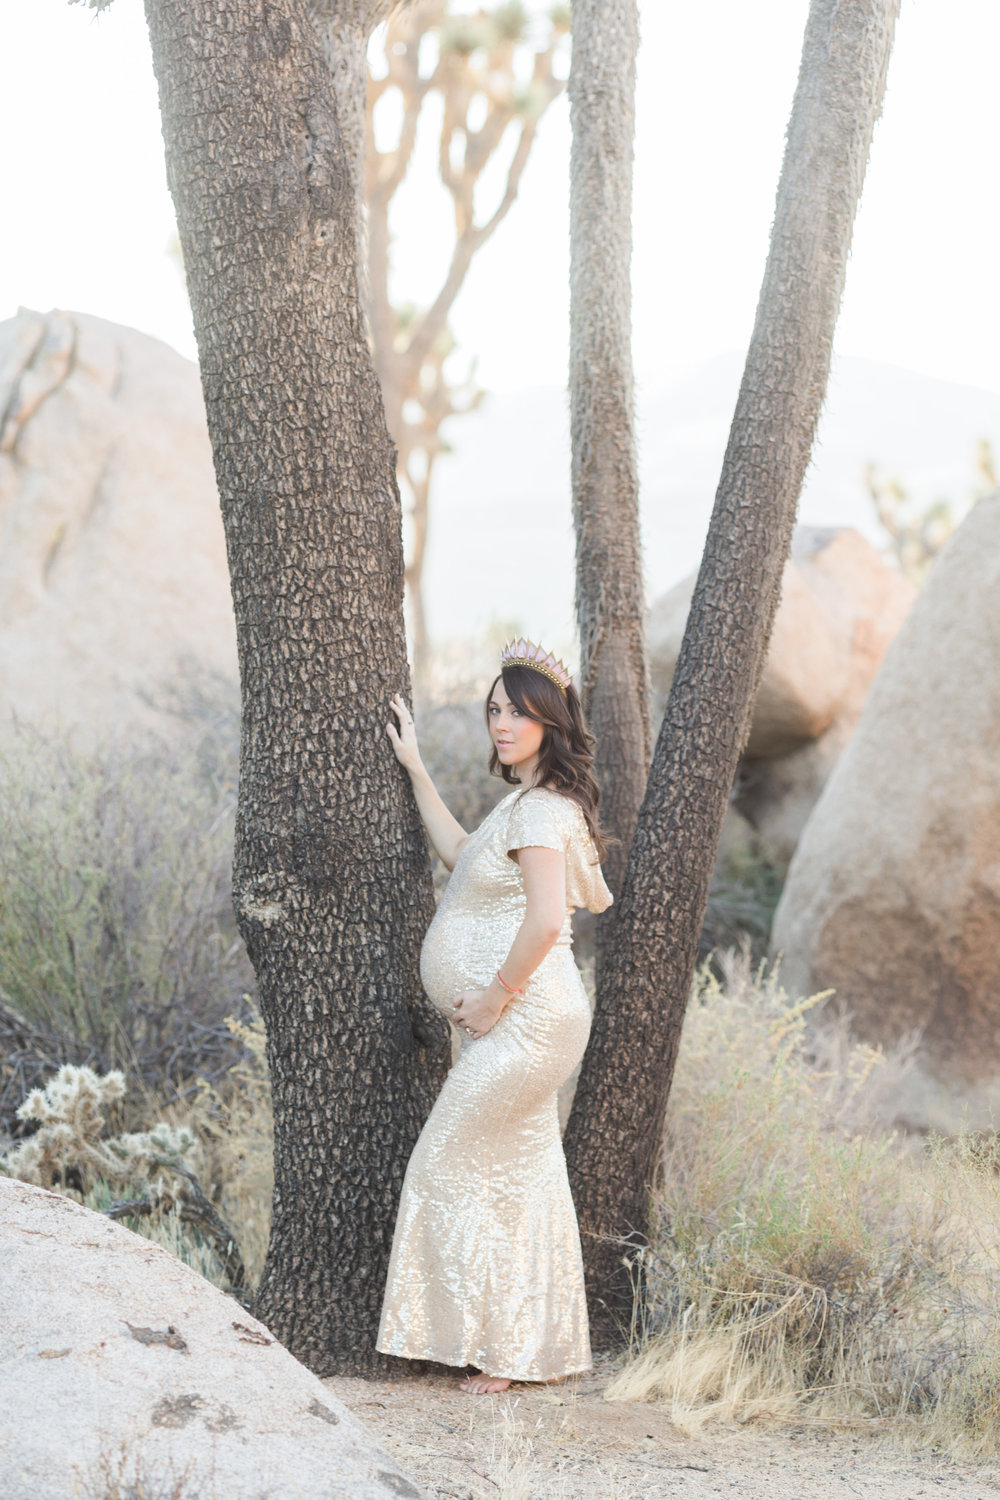 maternity_photos_joshua_tree_3.jpg